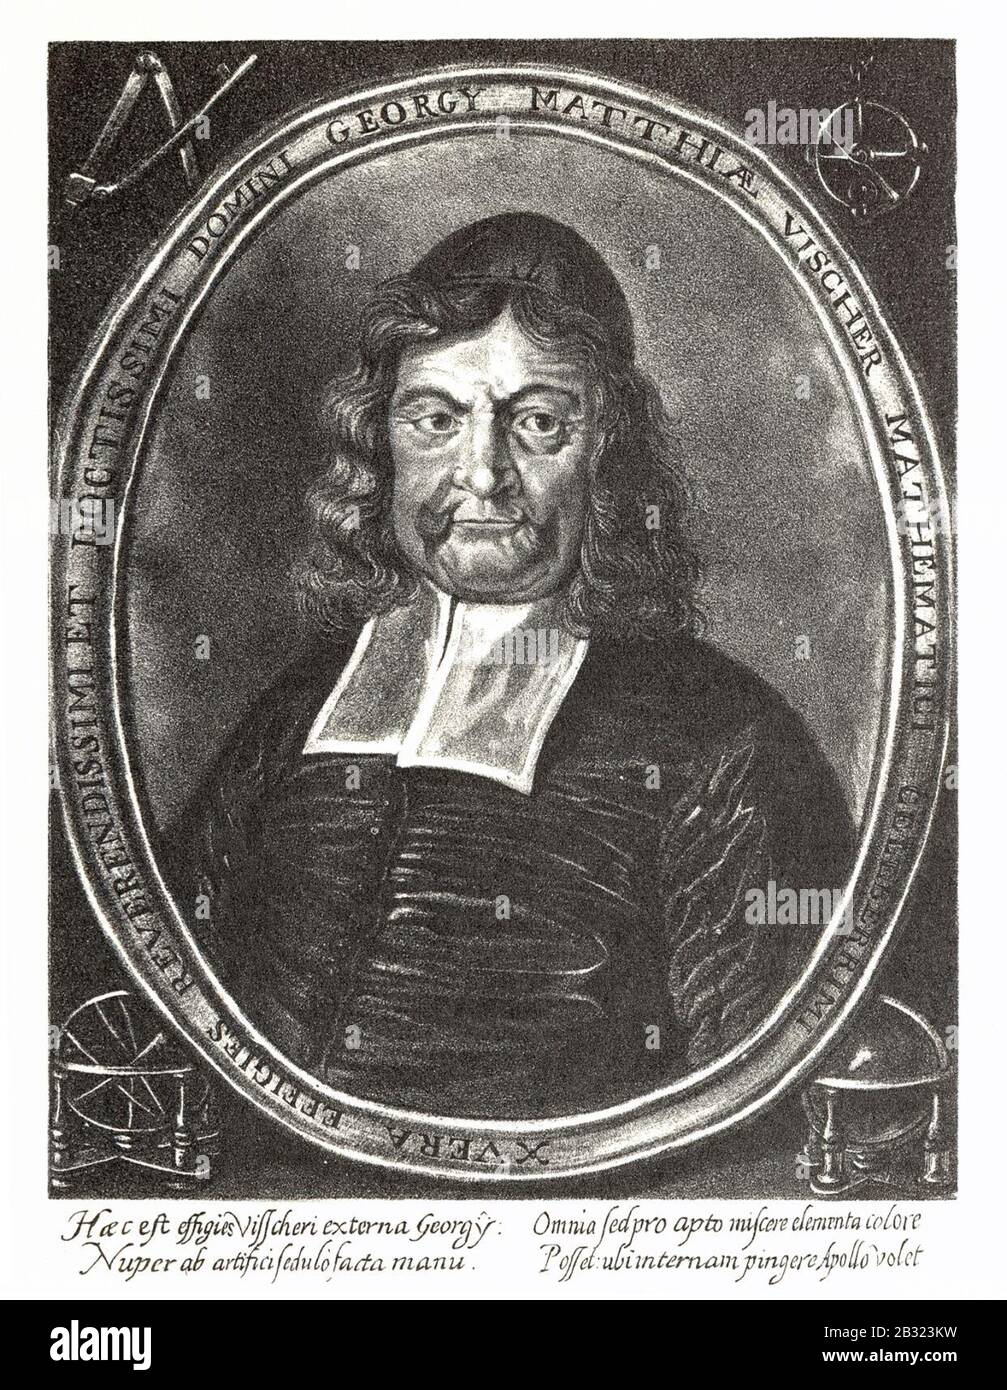 Georg Matthäus Vischer - Portrait 1684. Stock Photo